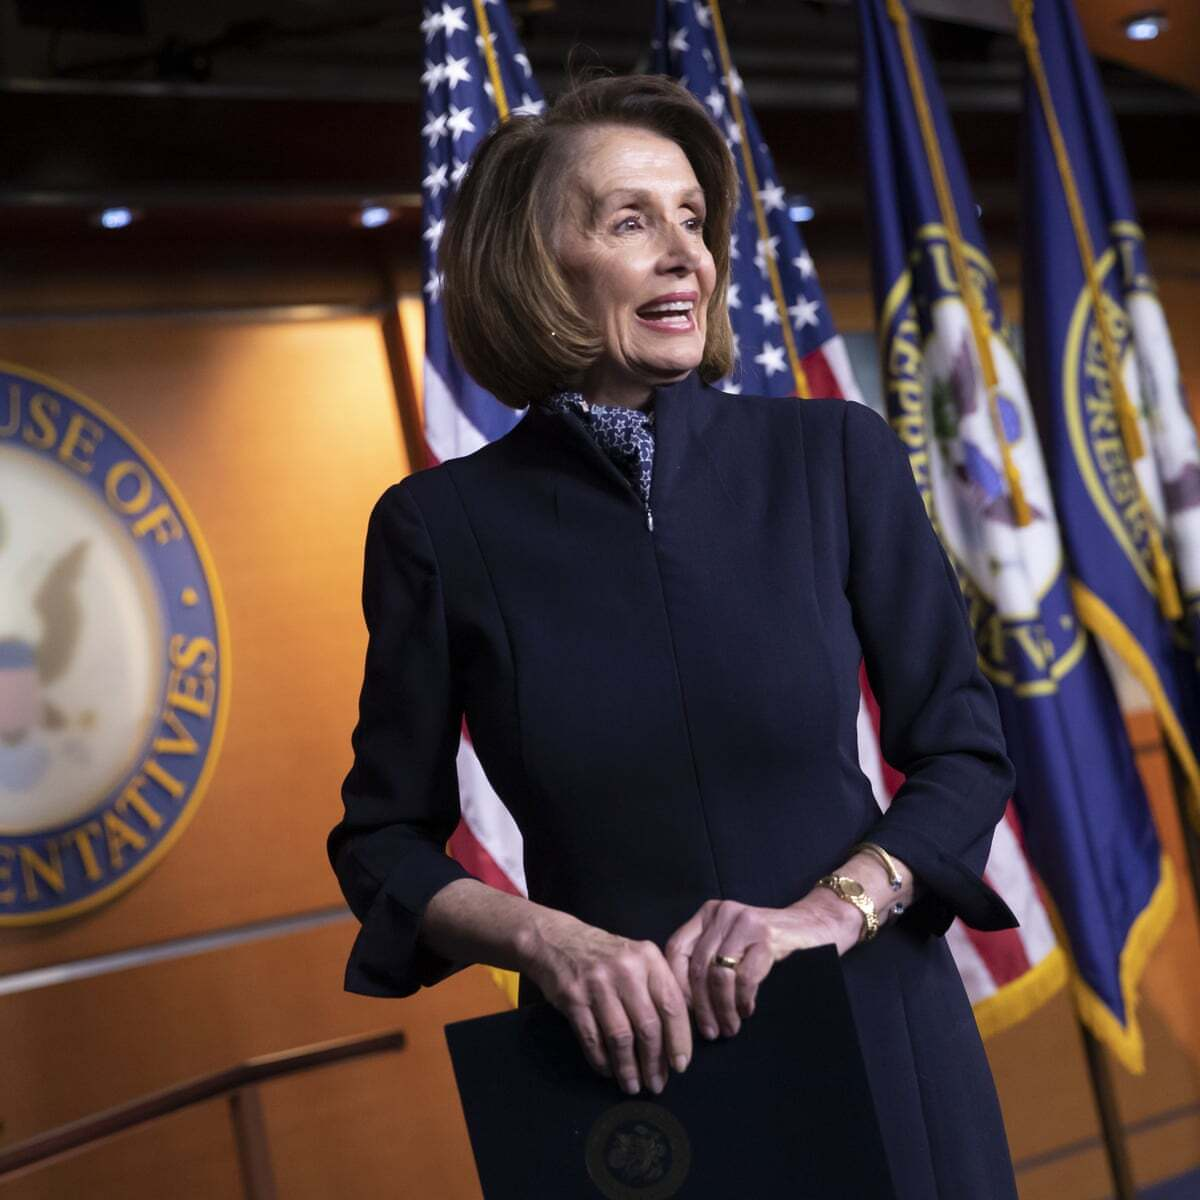 24.09.2021 – U.S. Supreme Court sets date to hear potential challenge to Roe v. Wade, while Pelosi abortion bill is set to stall in the Senate